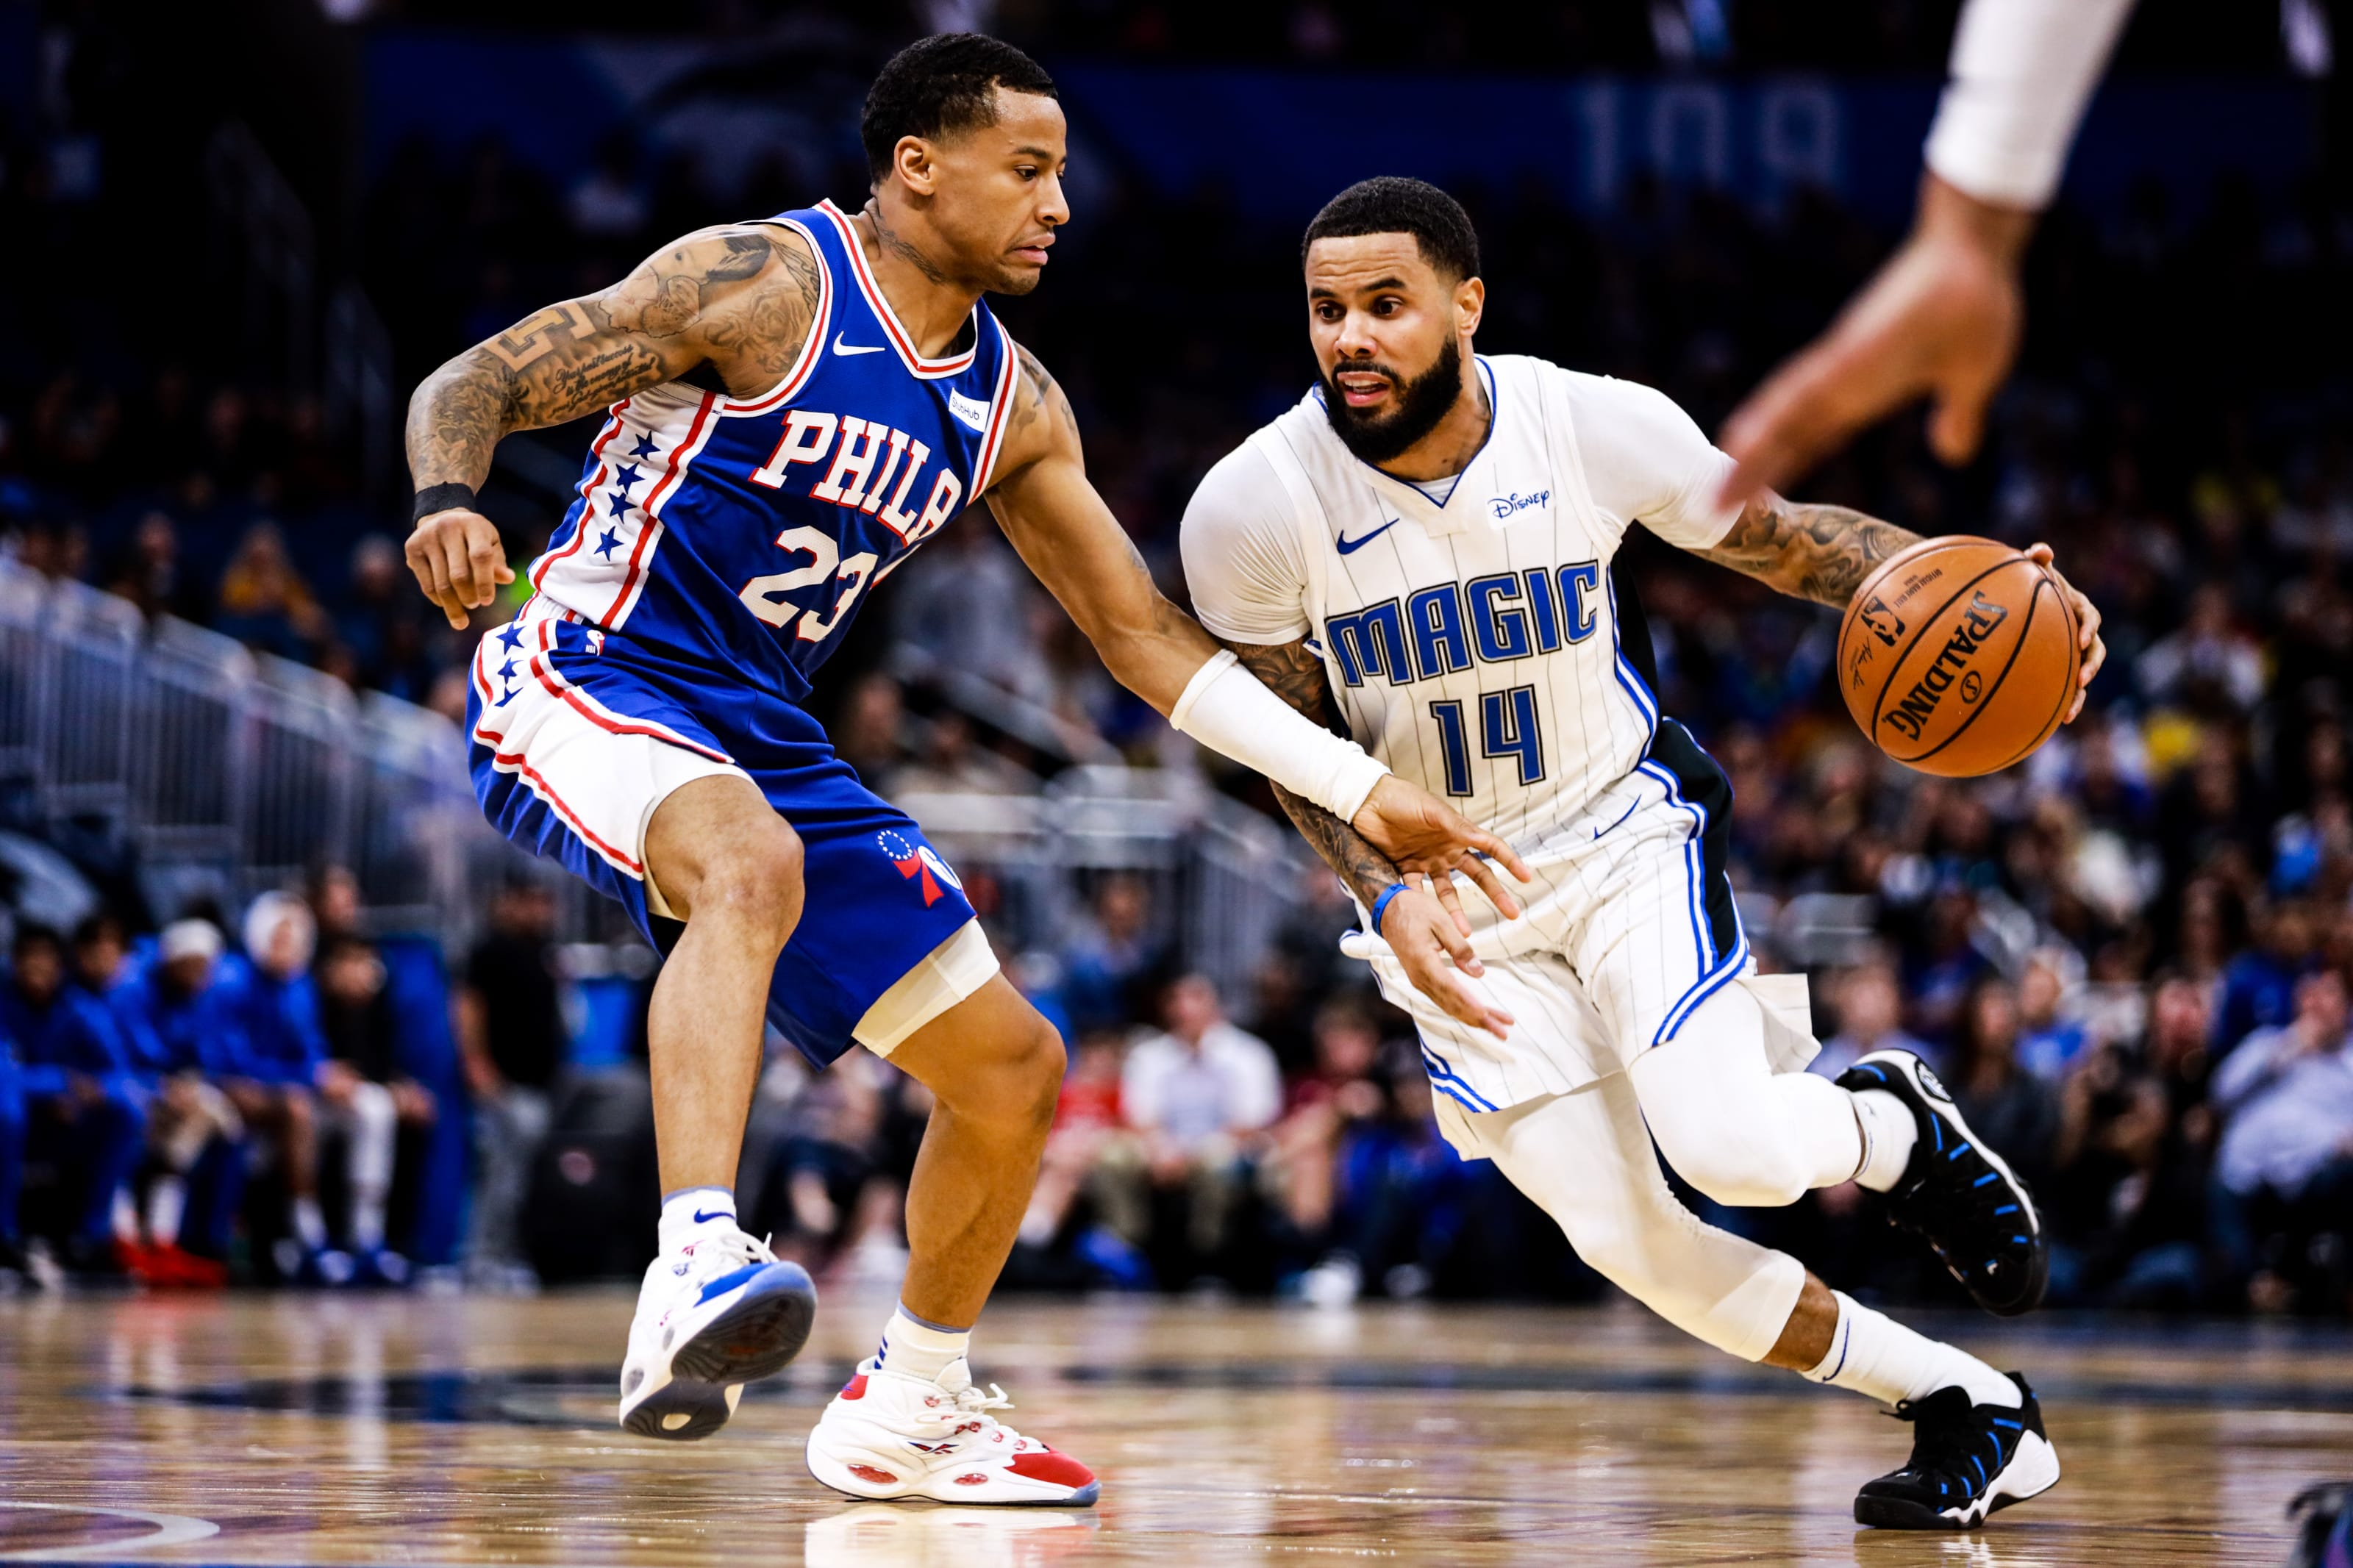 Portland Trail Blazers Portland Trail Blazers: 4 reasonable options for the final roster spot